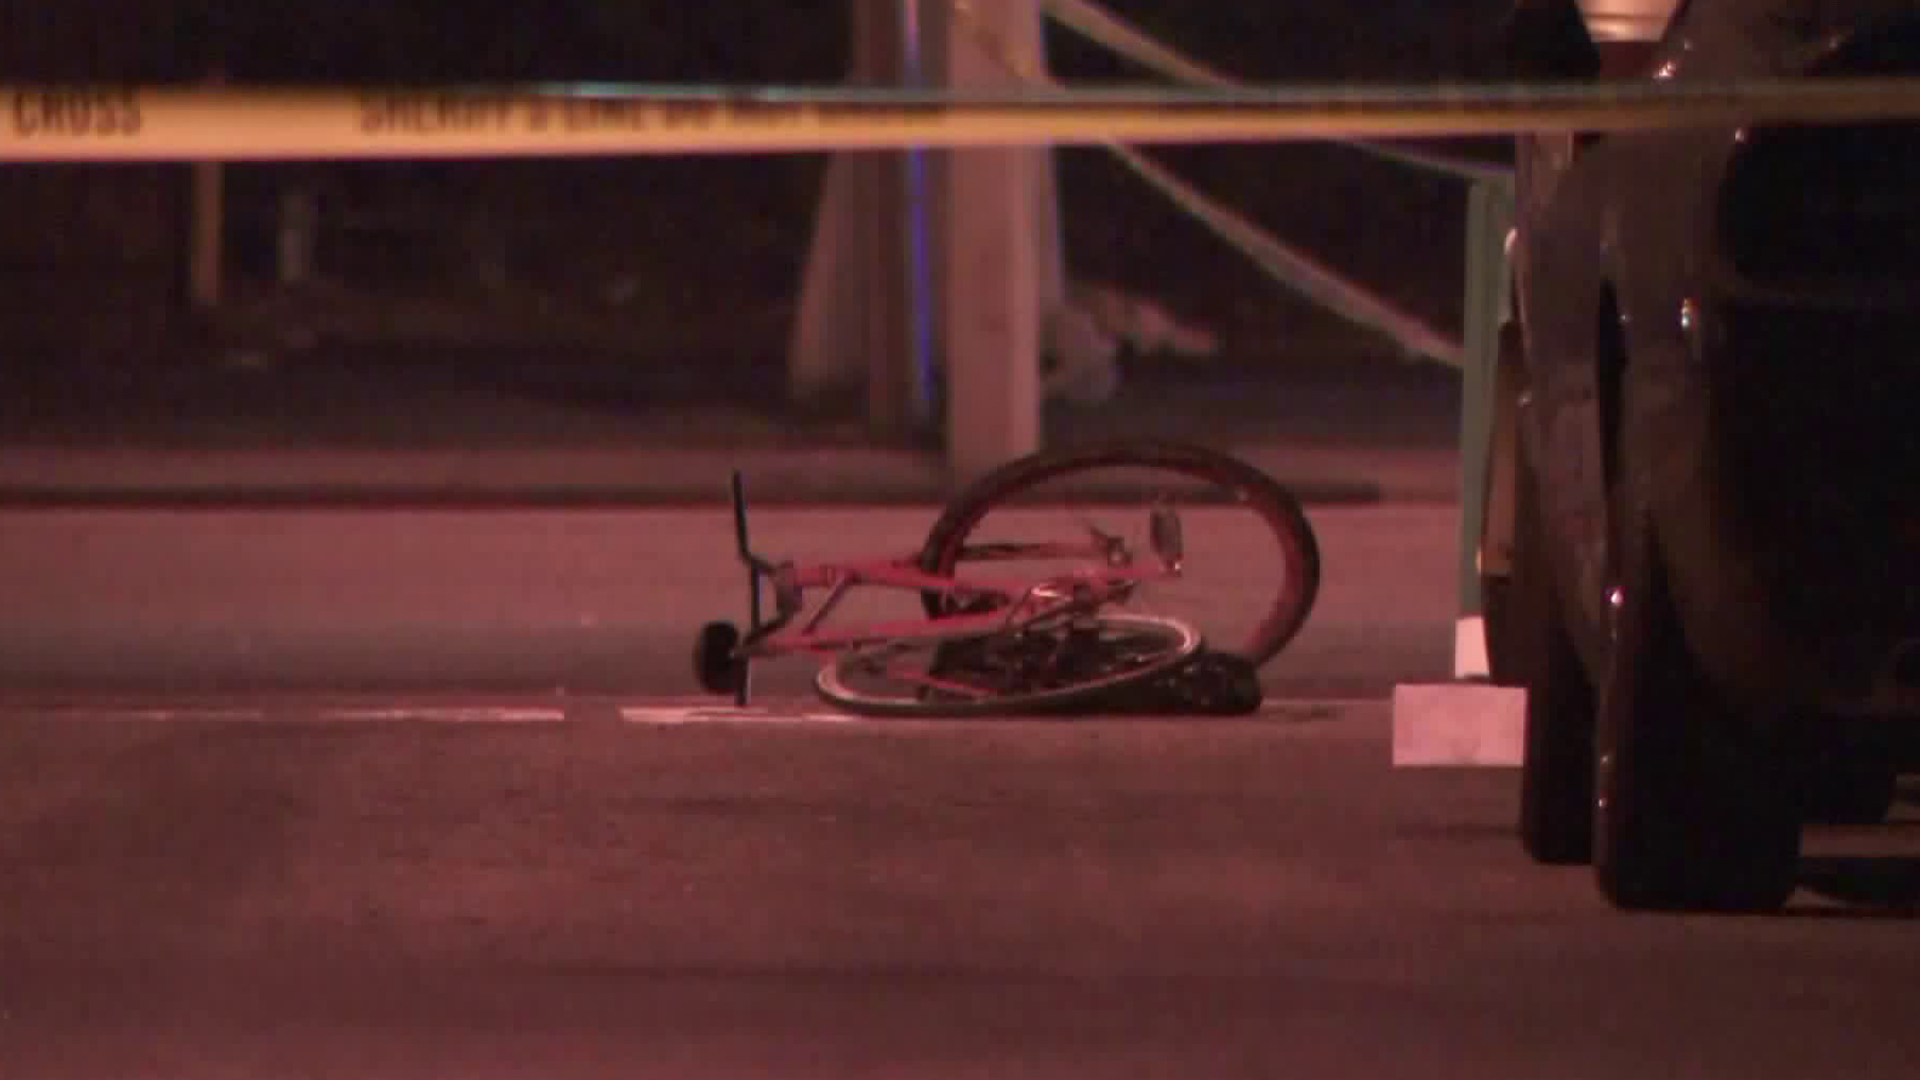 A bicycle is seen at the scene of a fatal shooting in the Florence-Firestone neighborhood on Sept. 15, 2019. (Credit: KTLA)